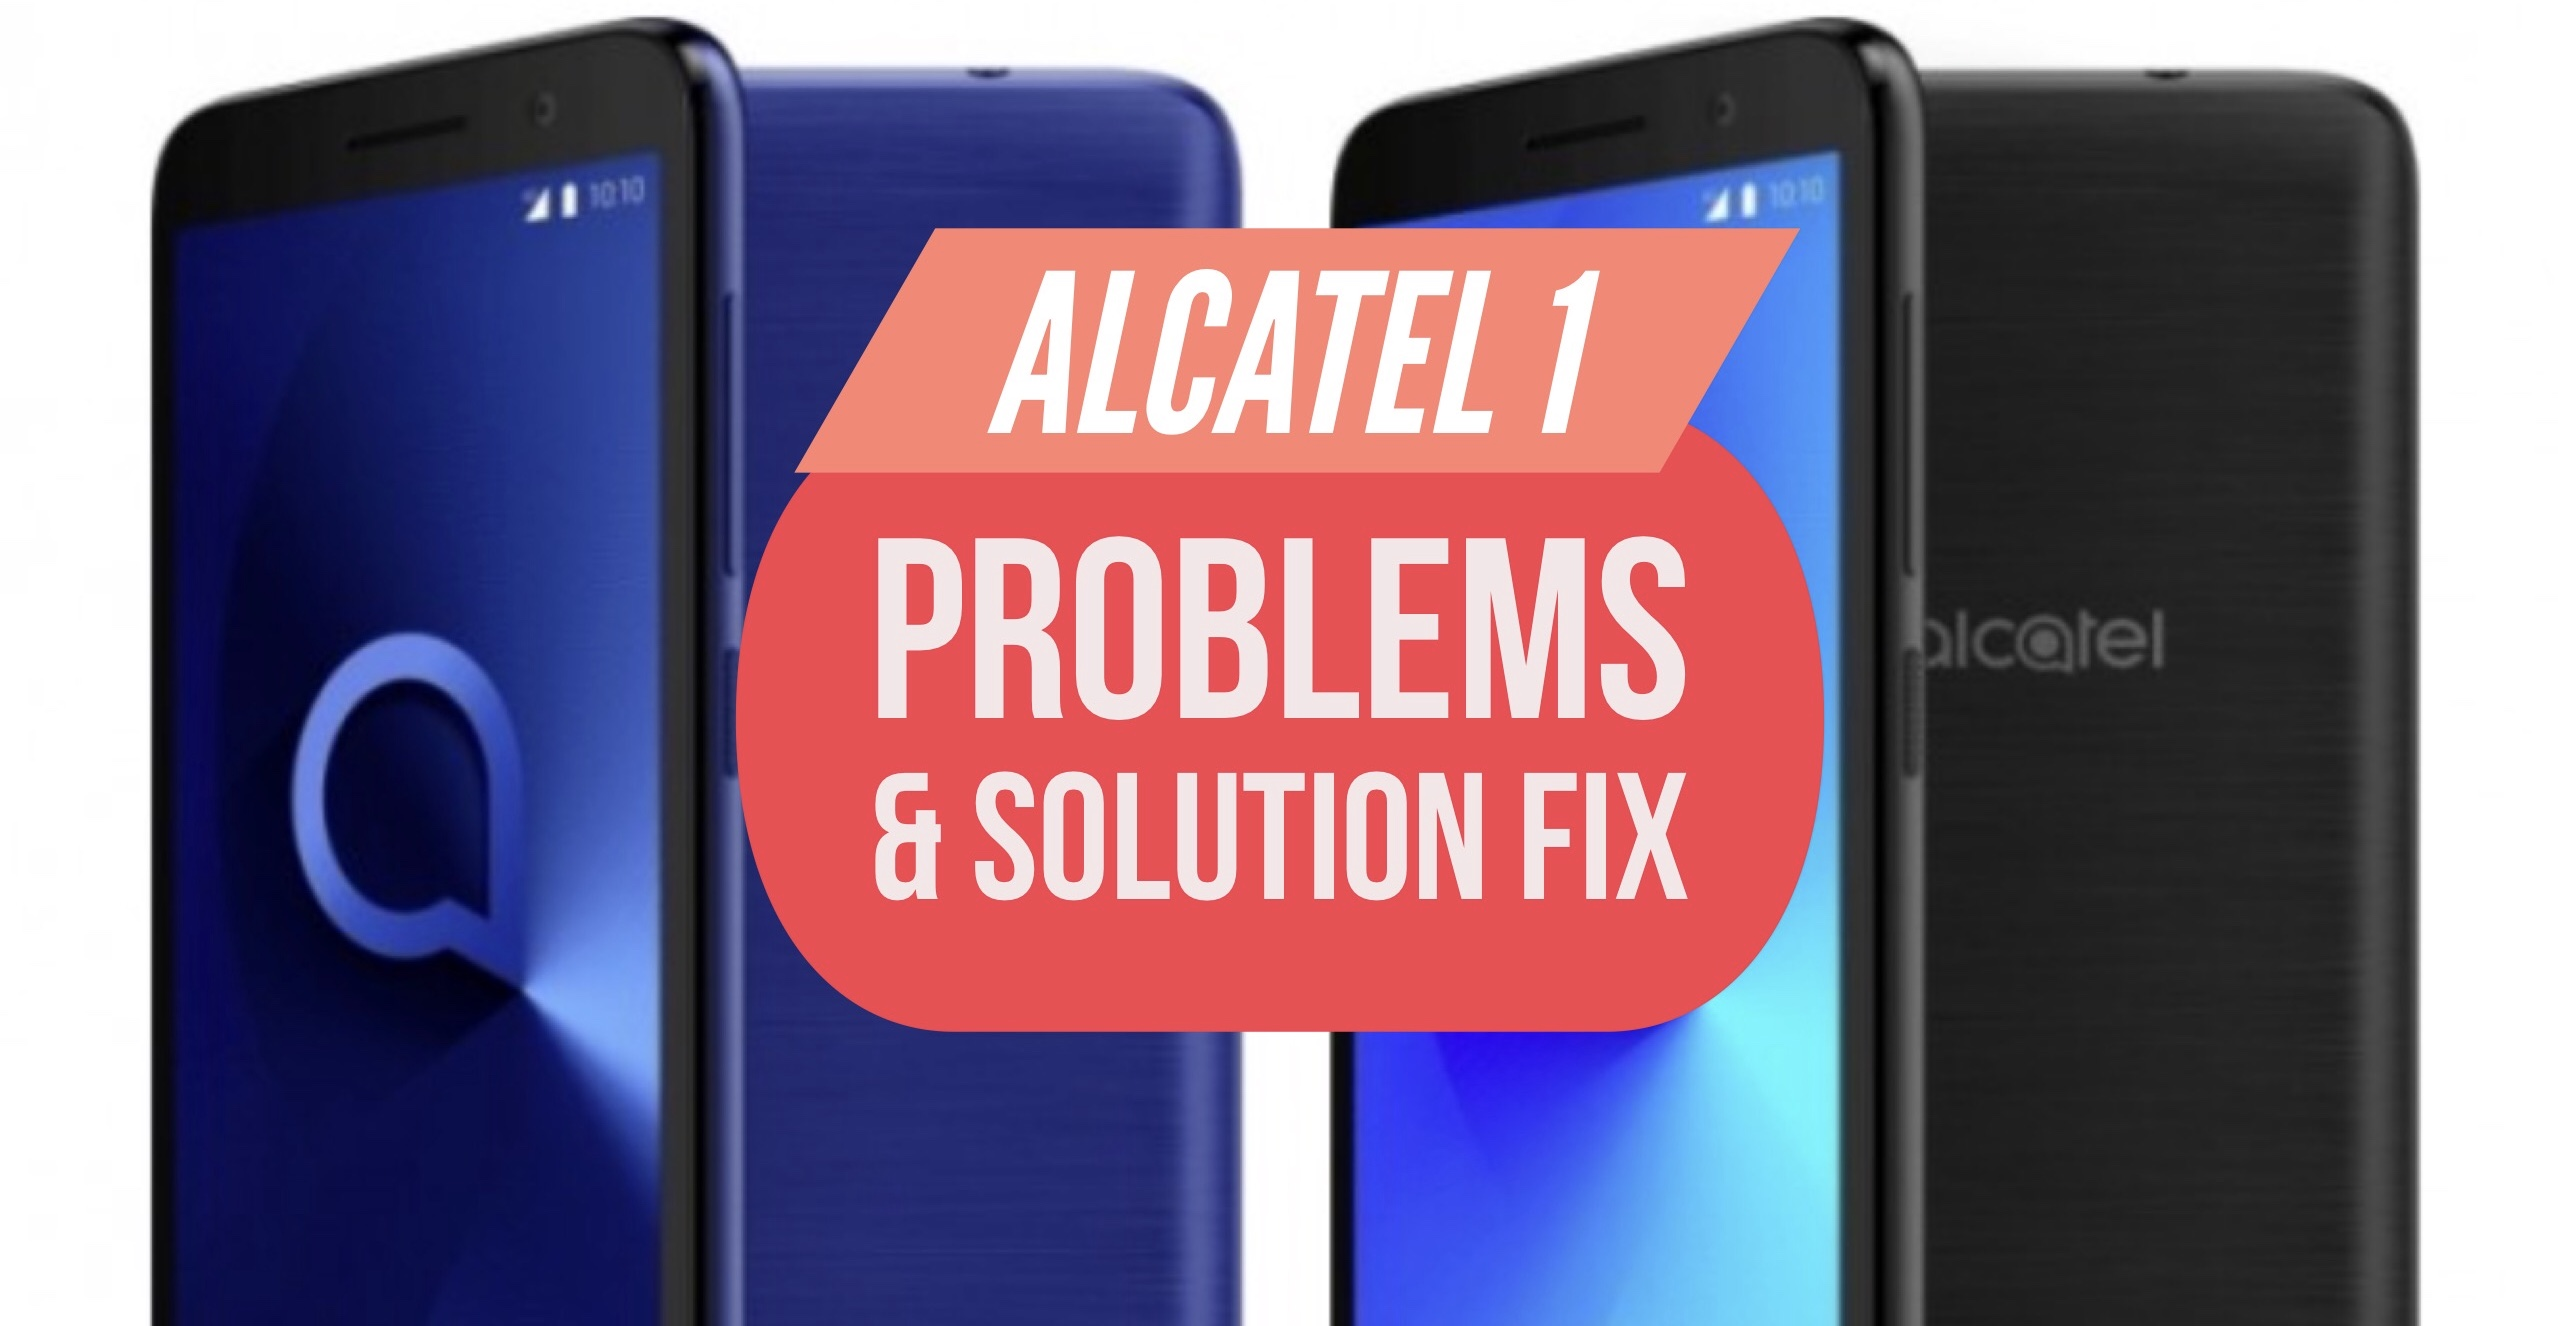 Alcatel 1 Problems & Issues & How to Fix Them: Tips & Tricks